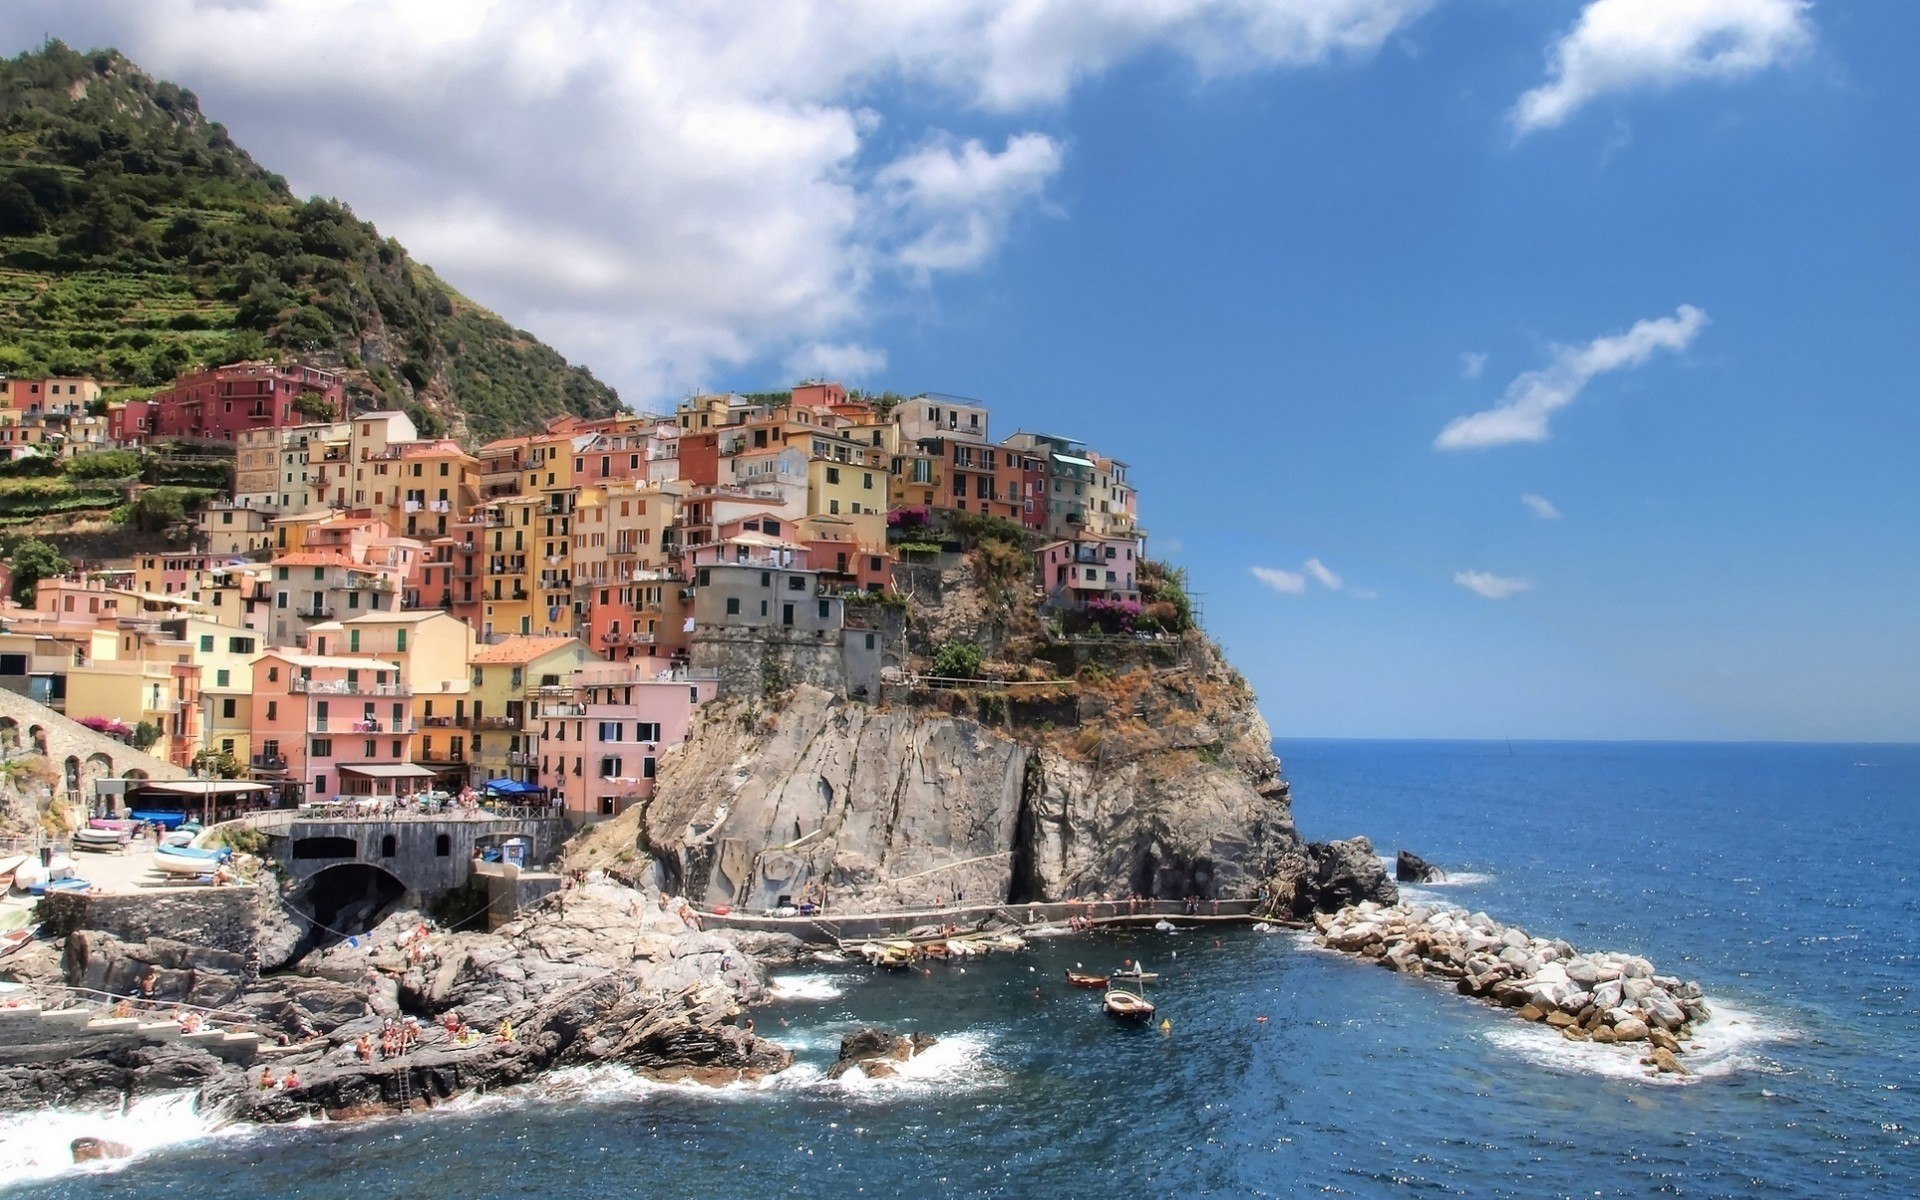 italy seashore sea travel water beach town ocean city architecture sight tourism sky seaside coastal bay vacation summer shore landscape cinque terre manarola gorgeous